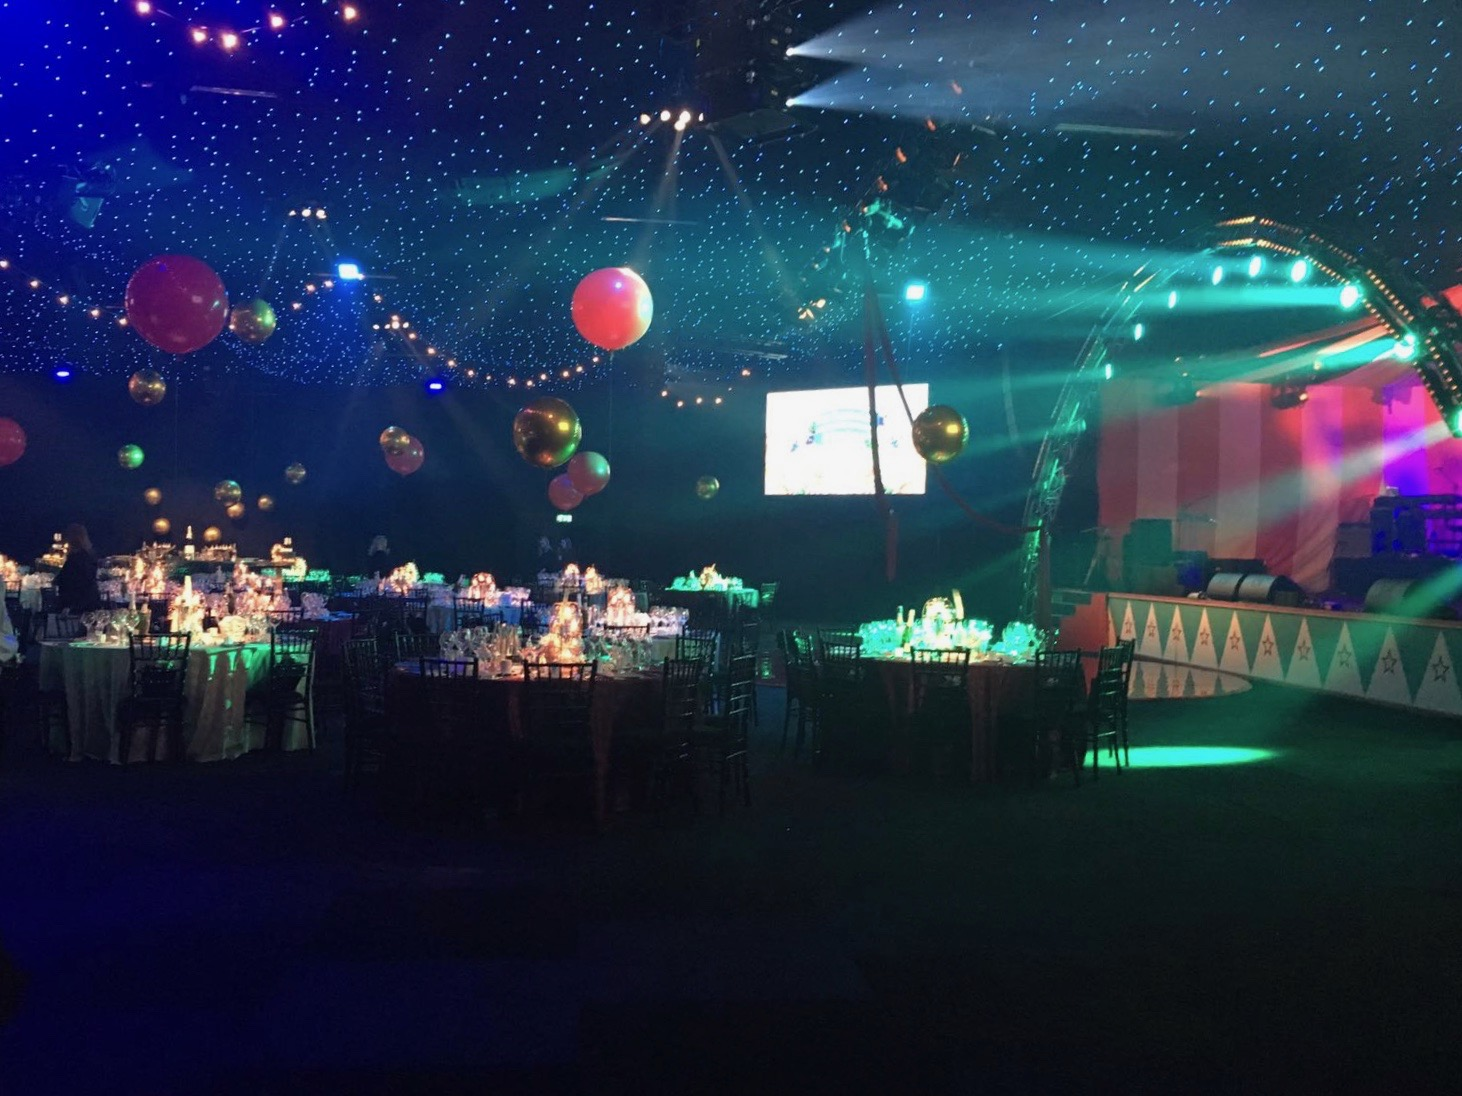 Ronan Keating's Emeralds & Ivy Ball 2017